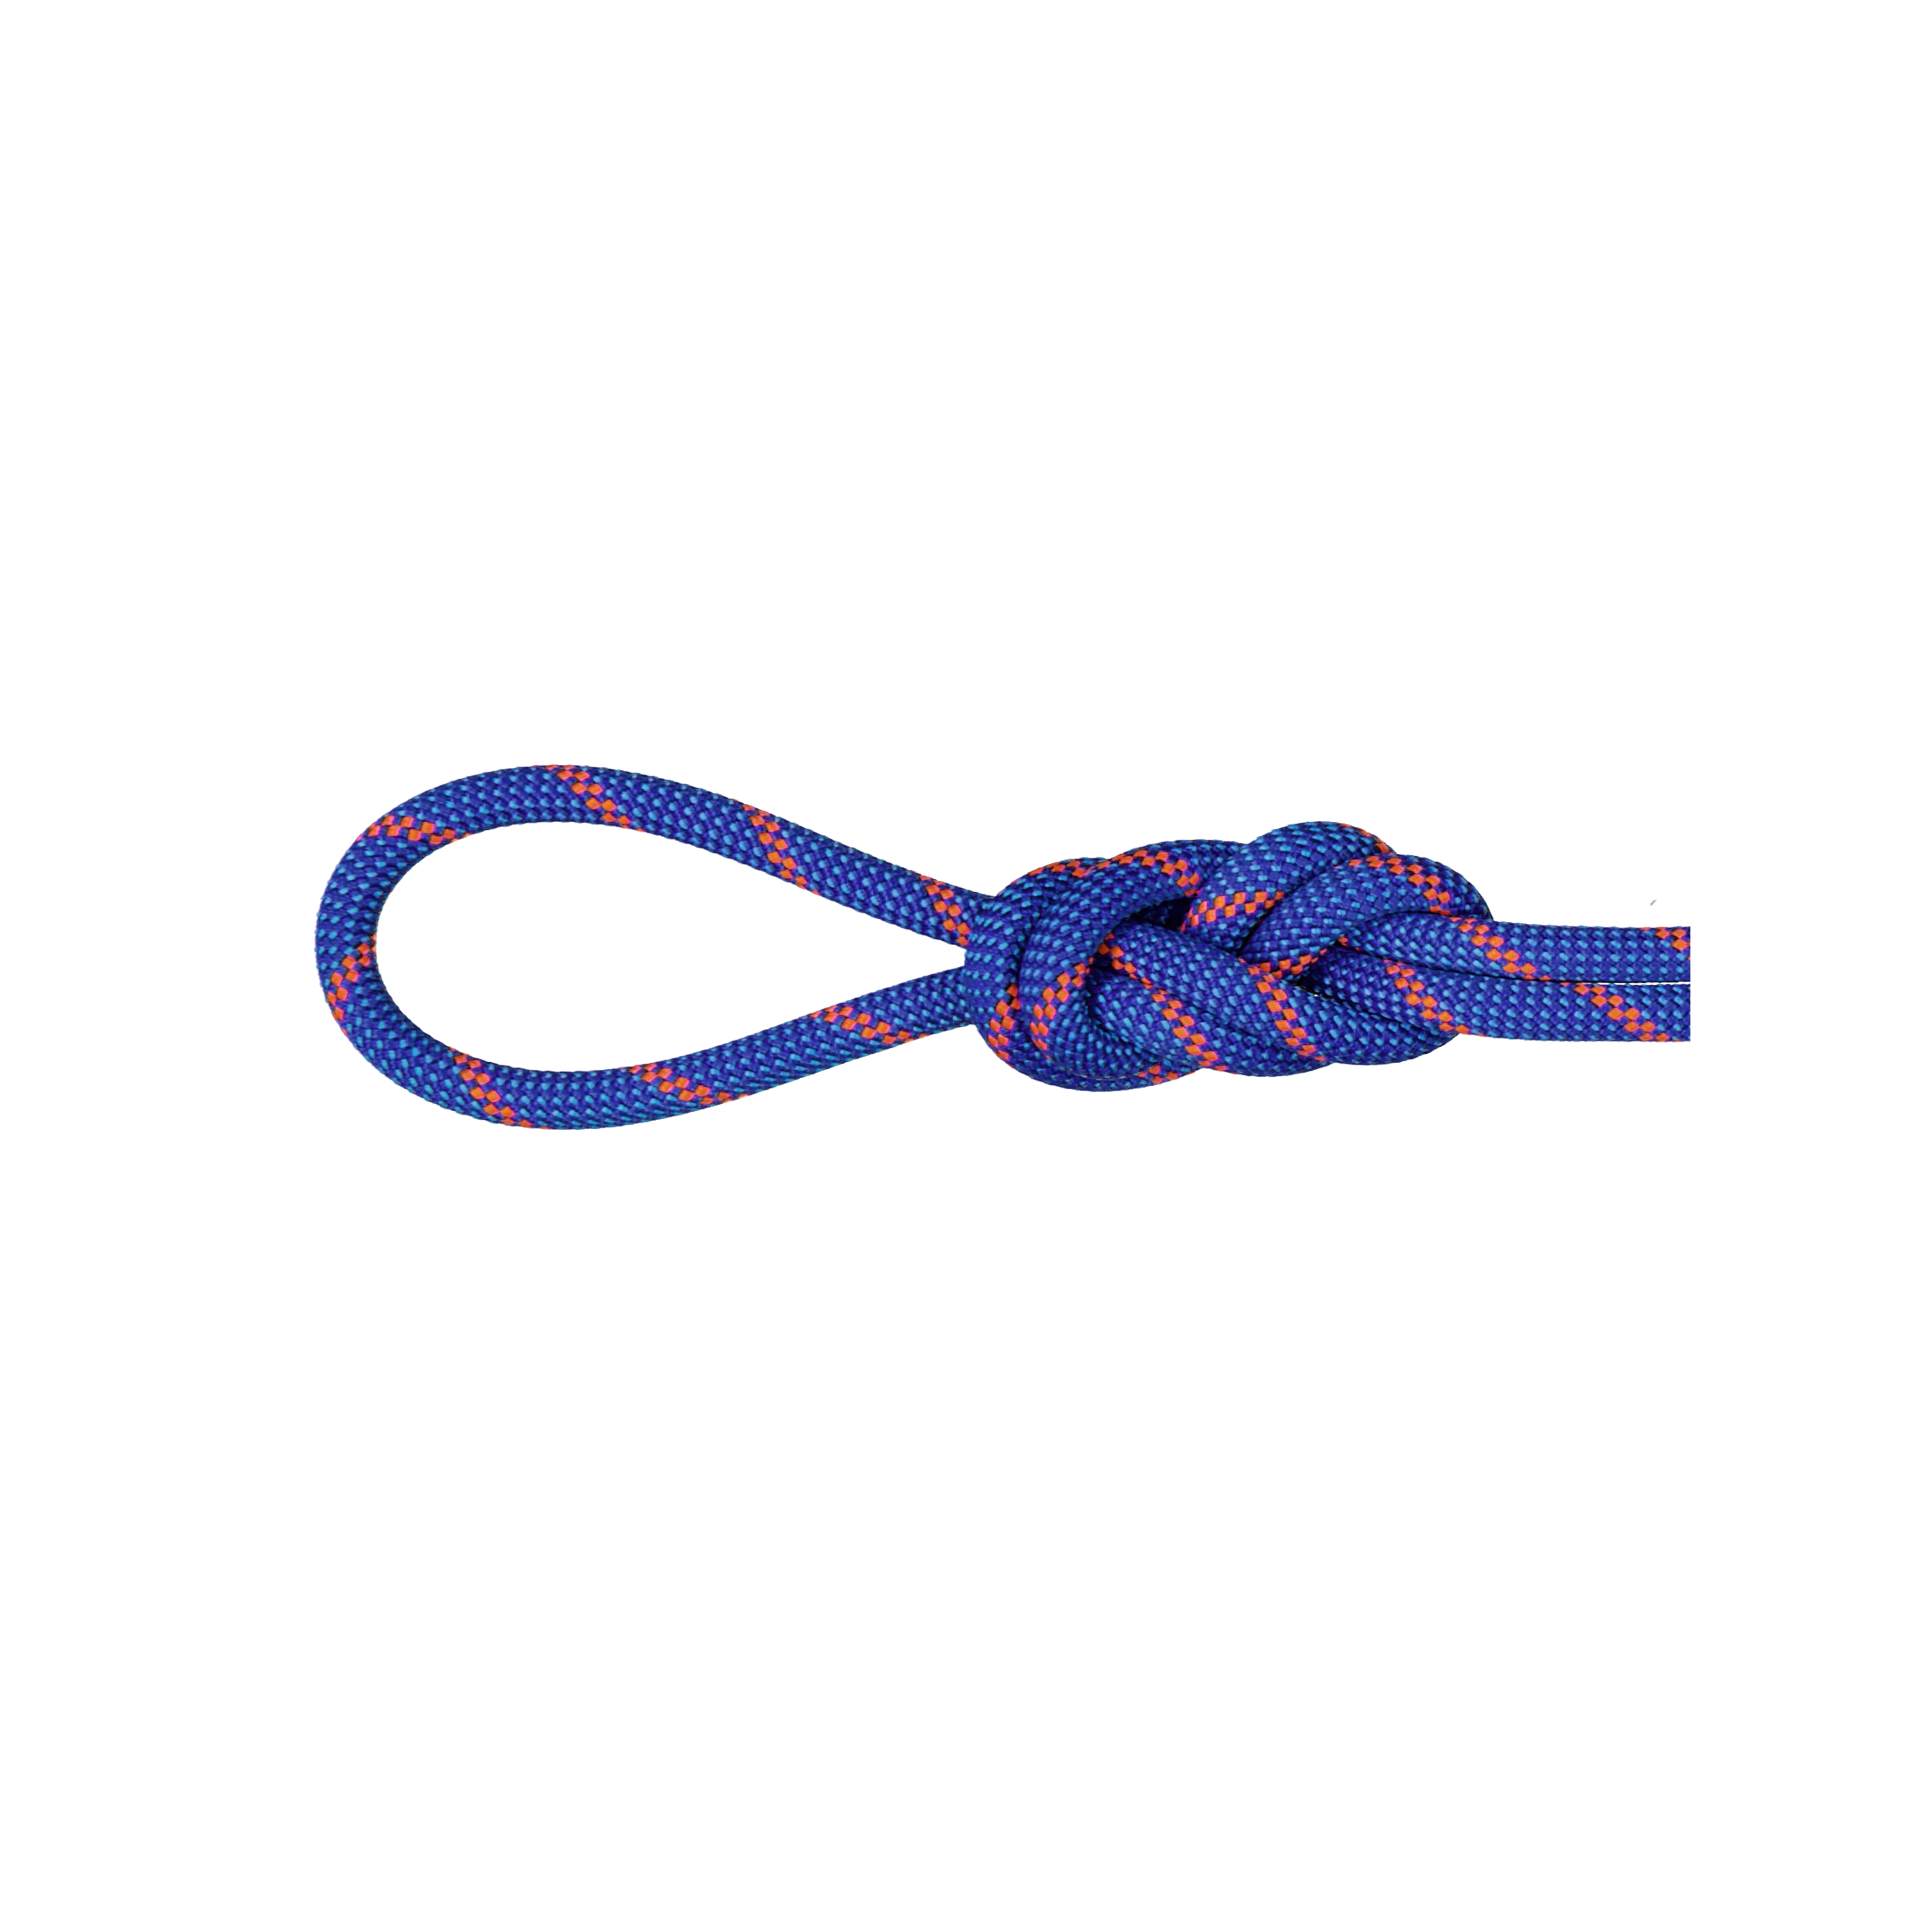 7.5 Alpine Sender Dry Rope product image